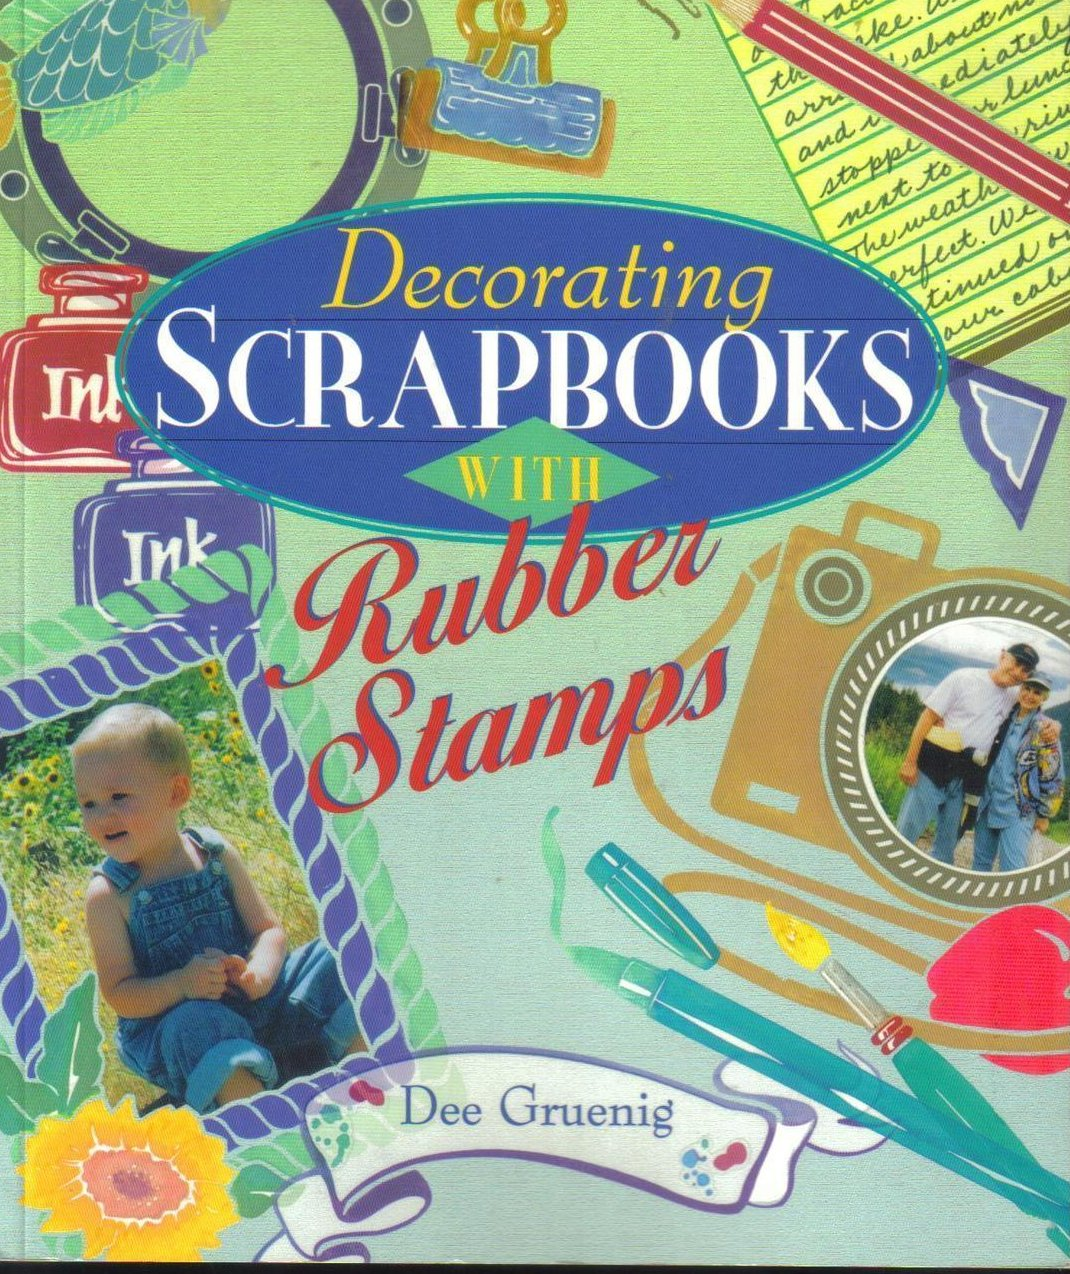 Decorating Scrapbooks With Rubber Stamps, Dee Gruenig Crafts